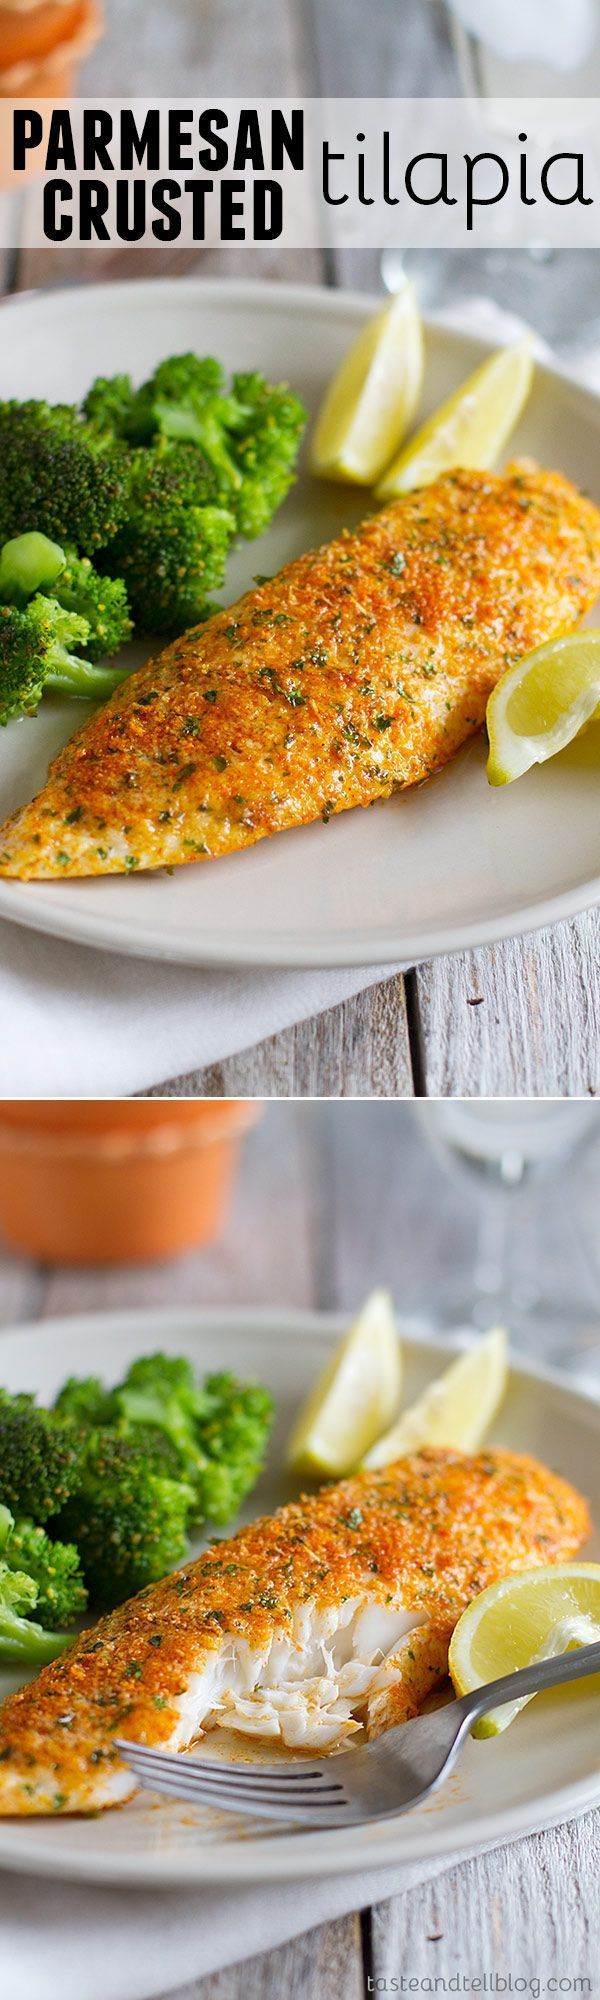 This Parmesan Crusted Tilapia is a simple fish recipe that is done in 20 minutes and will even impress non-fish lovers!  delighted wide world